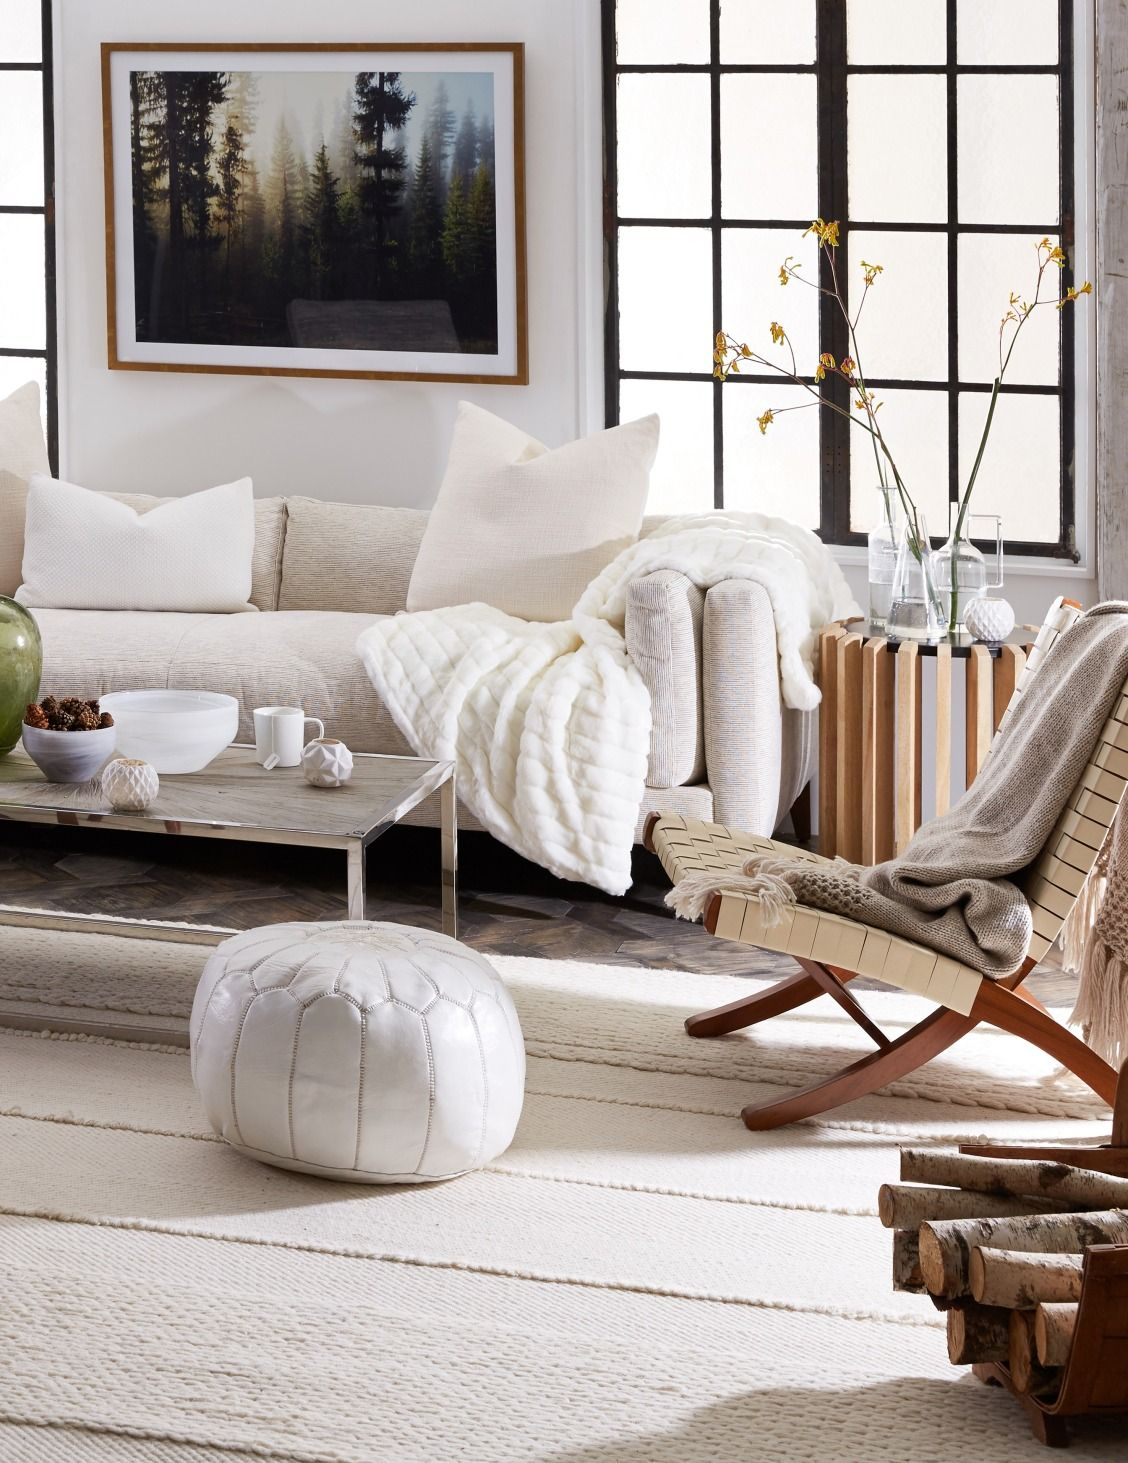 Minimalist and cozy with luxe all white layers and for Cozy minimalist living room